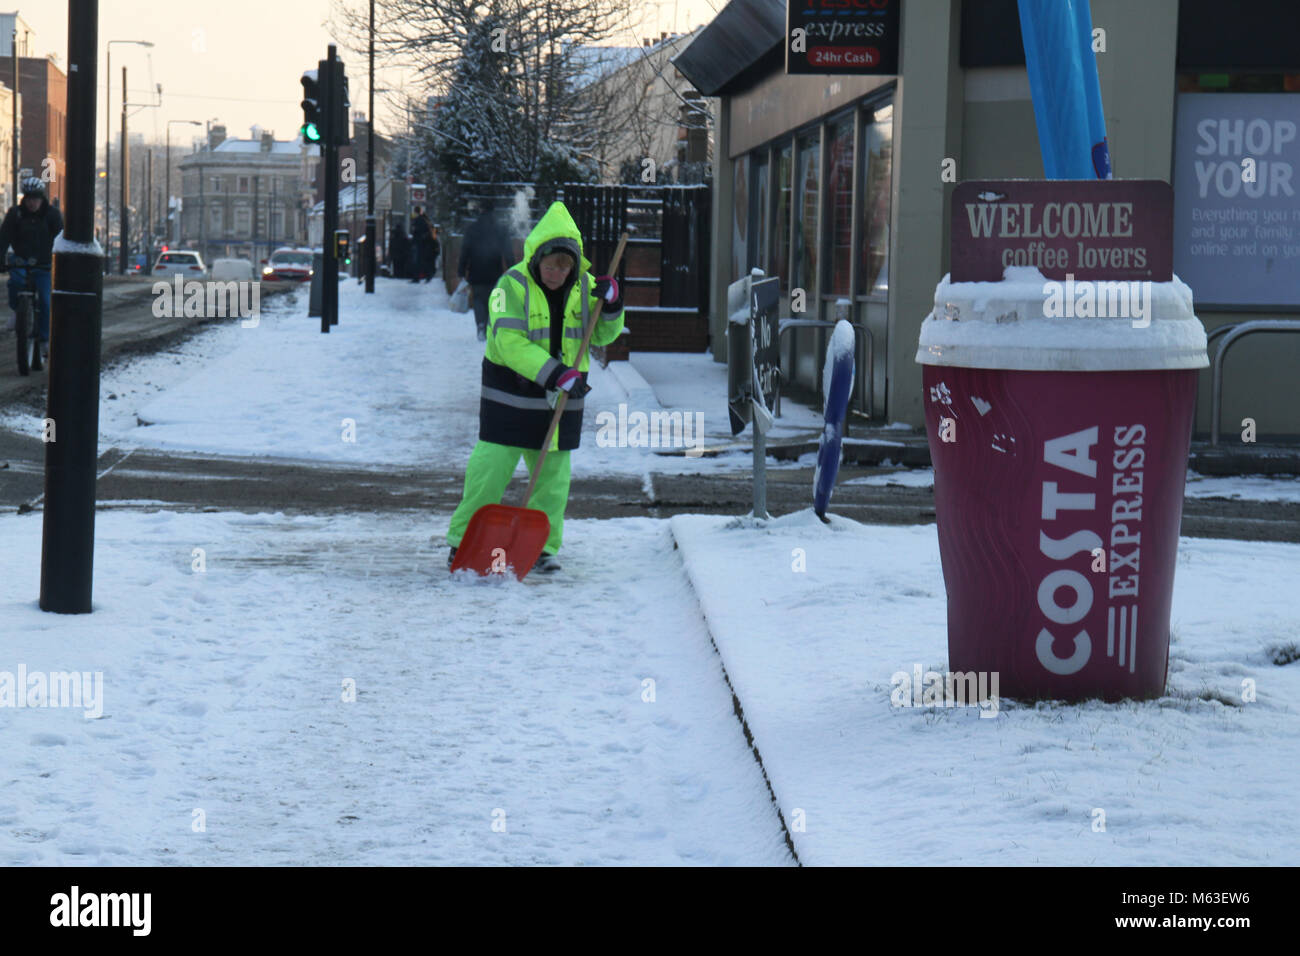 LONDON, UK - February 28: A worker spades snow off a walkway as streets of East London were covered with snow following - Stock Image